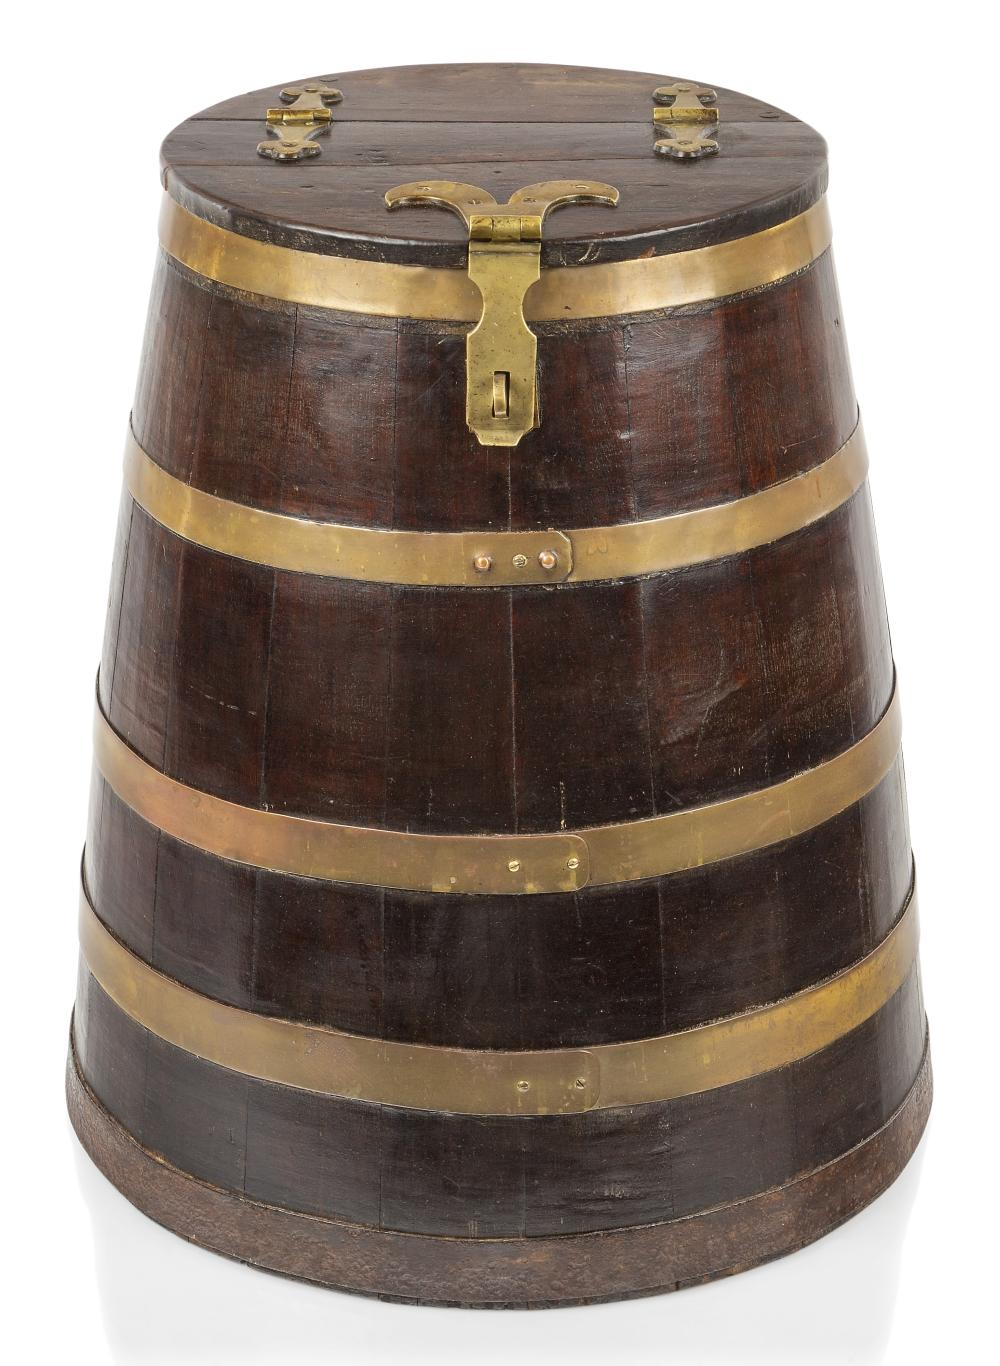 A RARE VICTORIAN BRASS-BOUND OAK HARNESS CASK FOR THE ROYAL NAVY